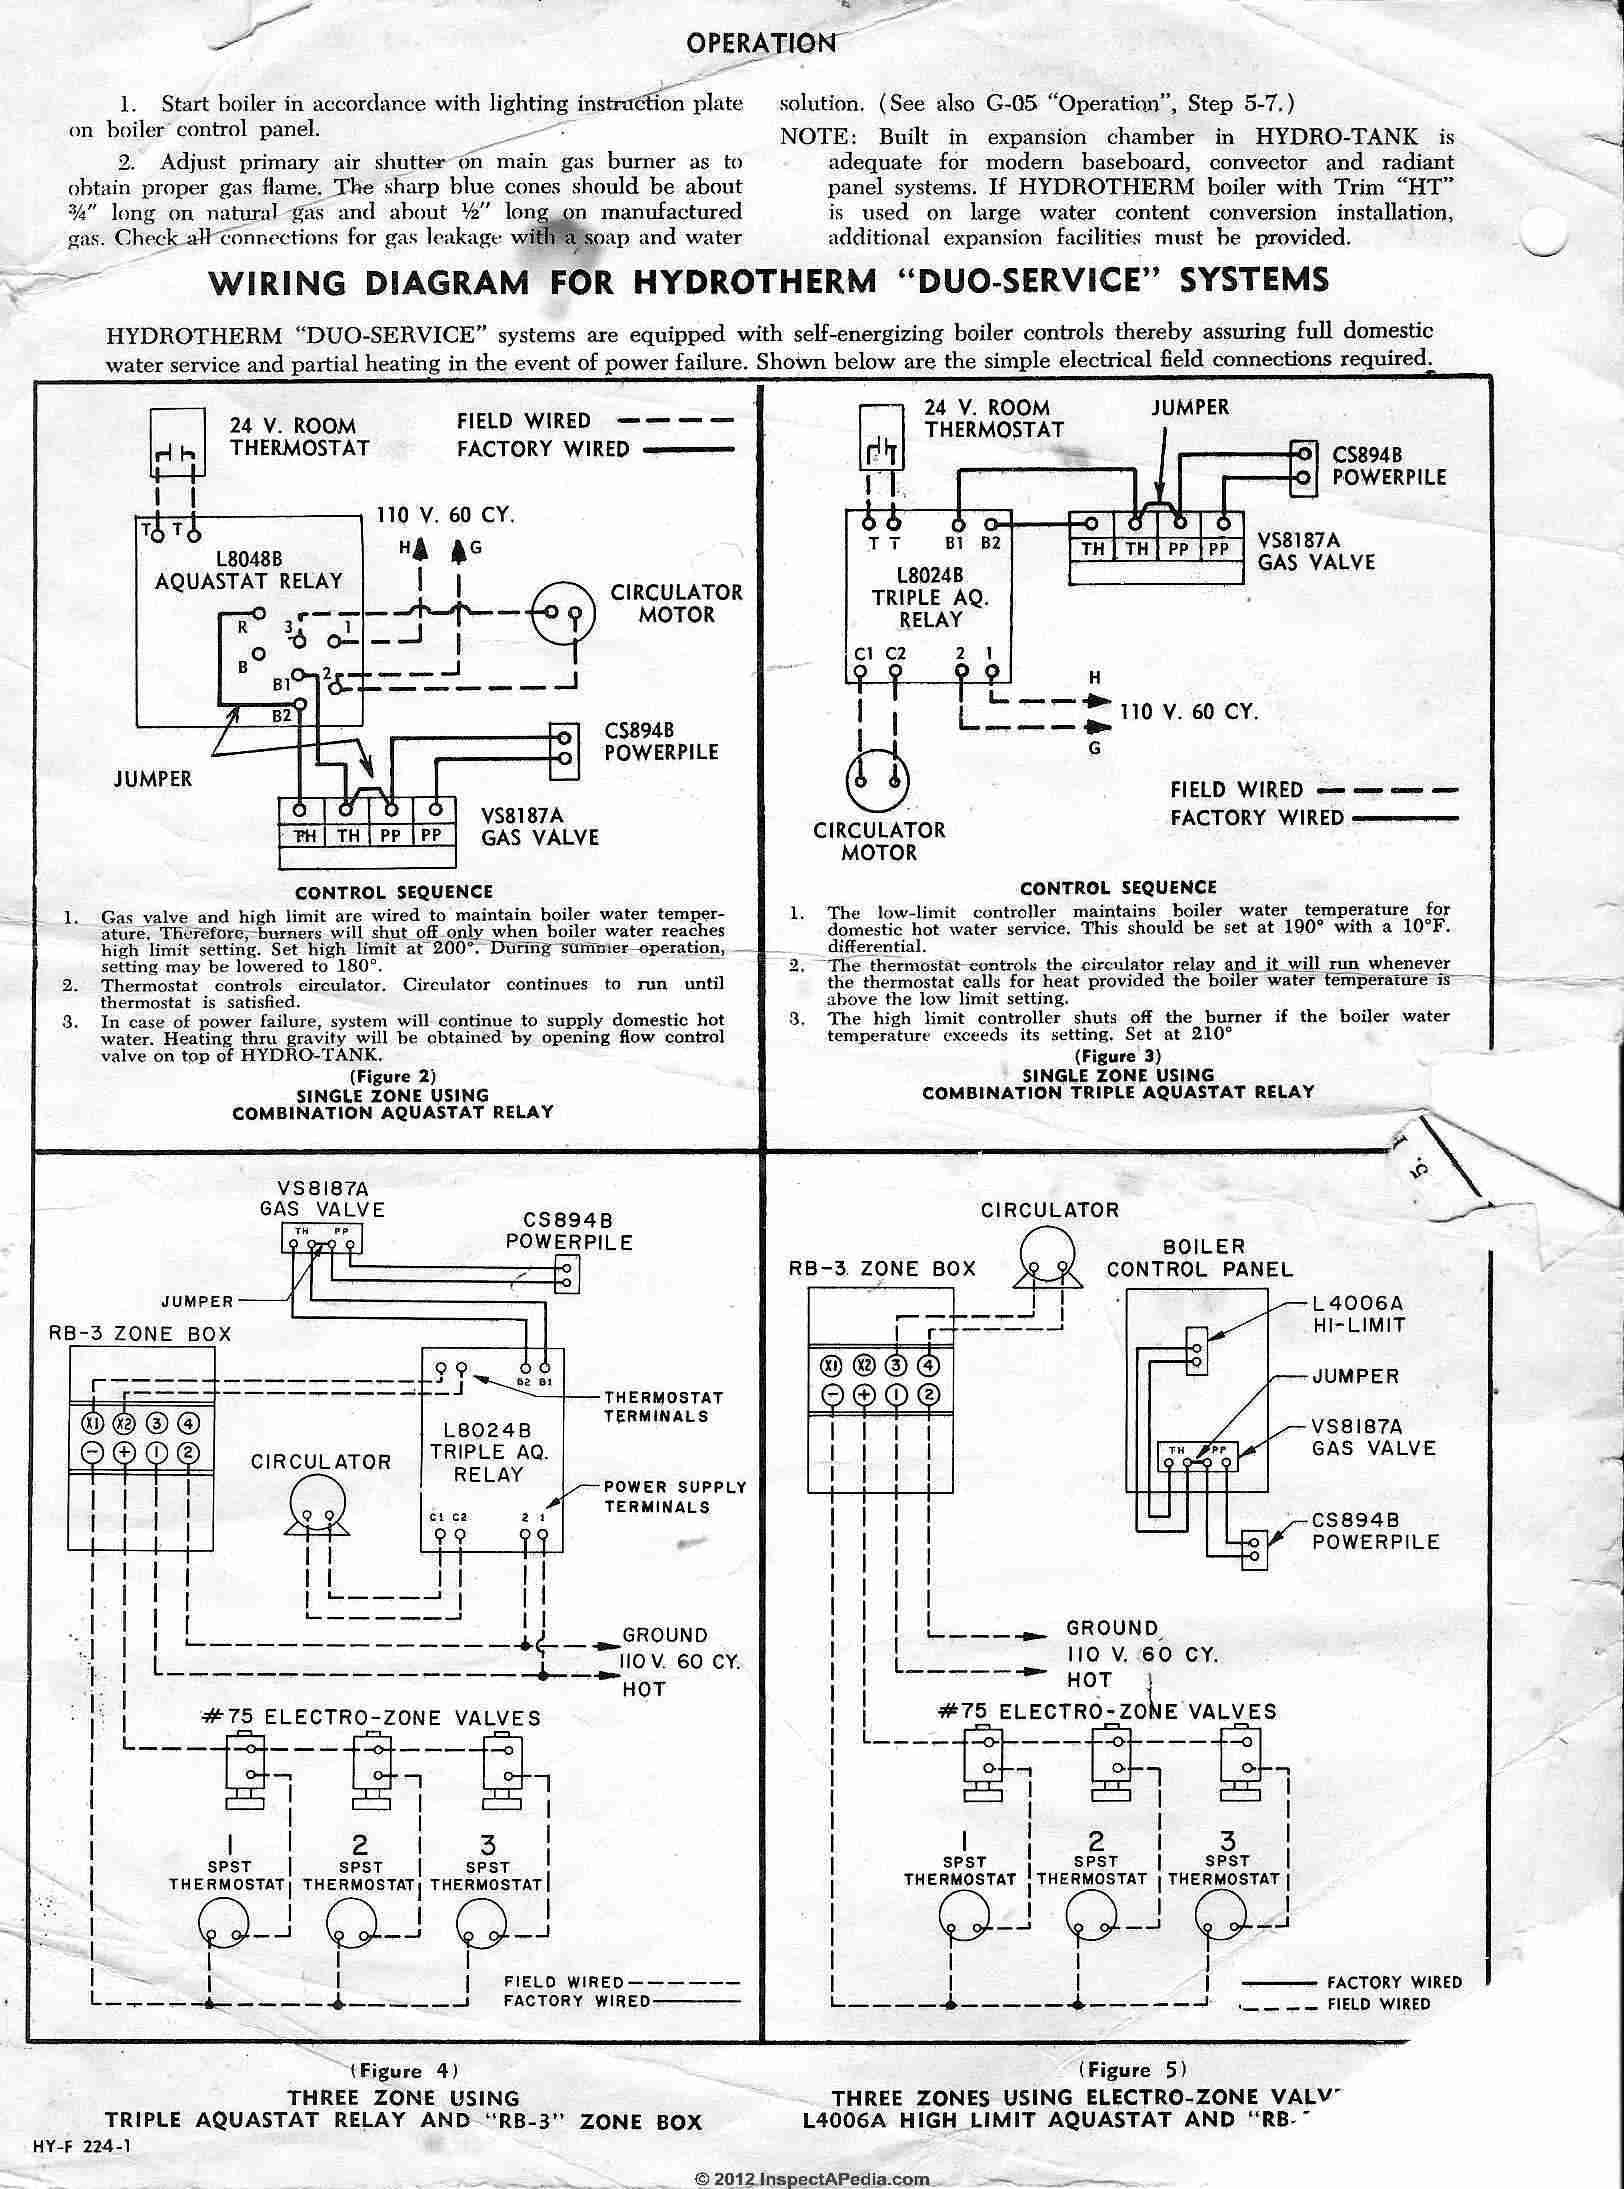 heating boiler aquastat control diagnosis troubleshooting repair rh inspectapedia com L8148E1265 Aquastat Relay Wiring Diagram L8148E1265 Aquastat Relay Wiring Diagram